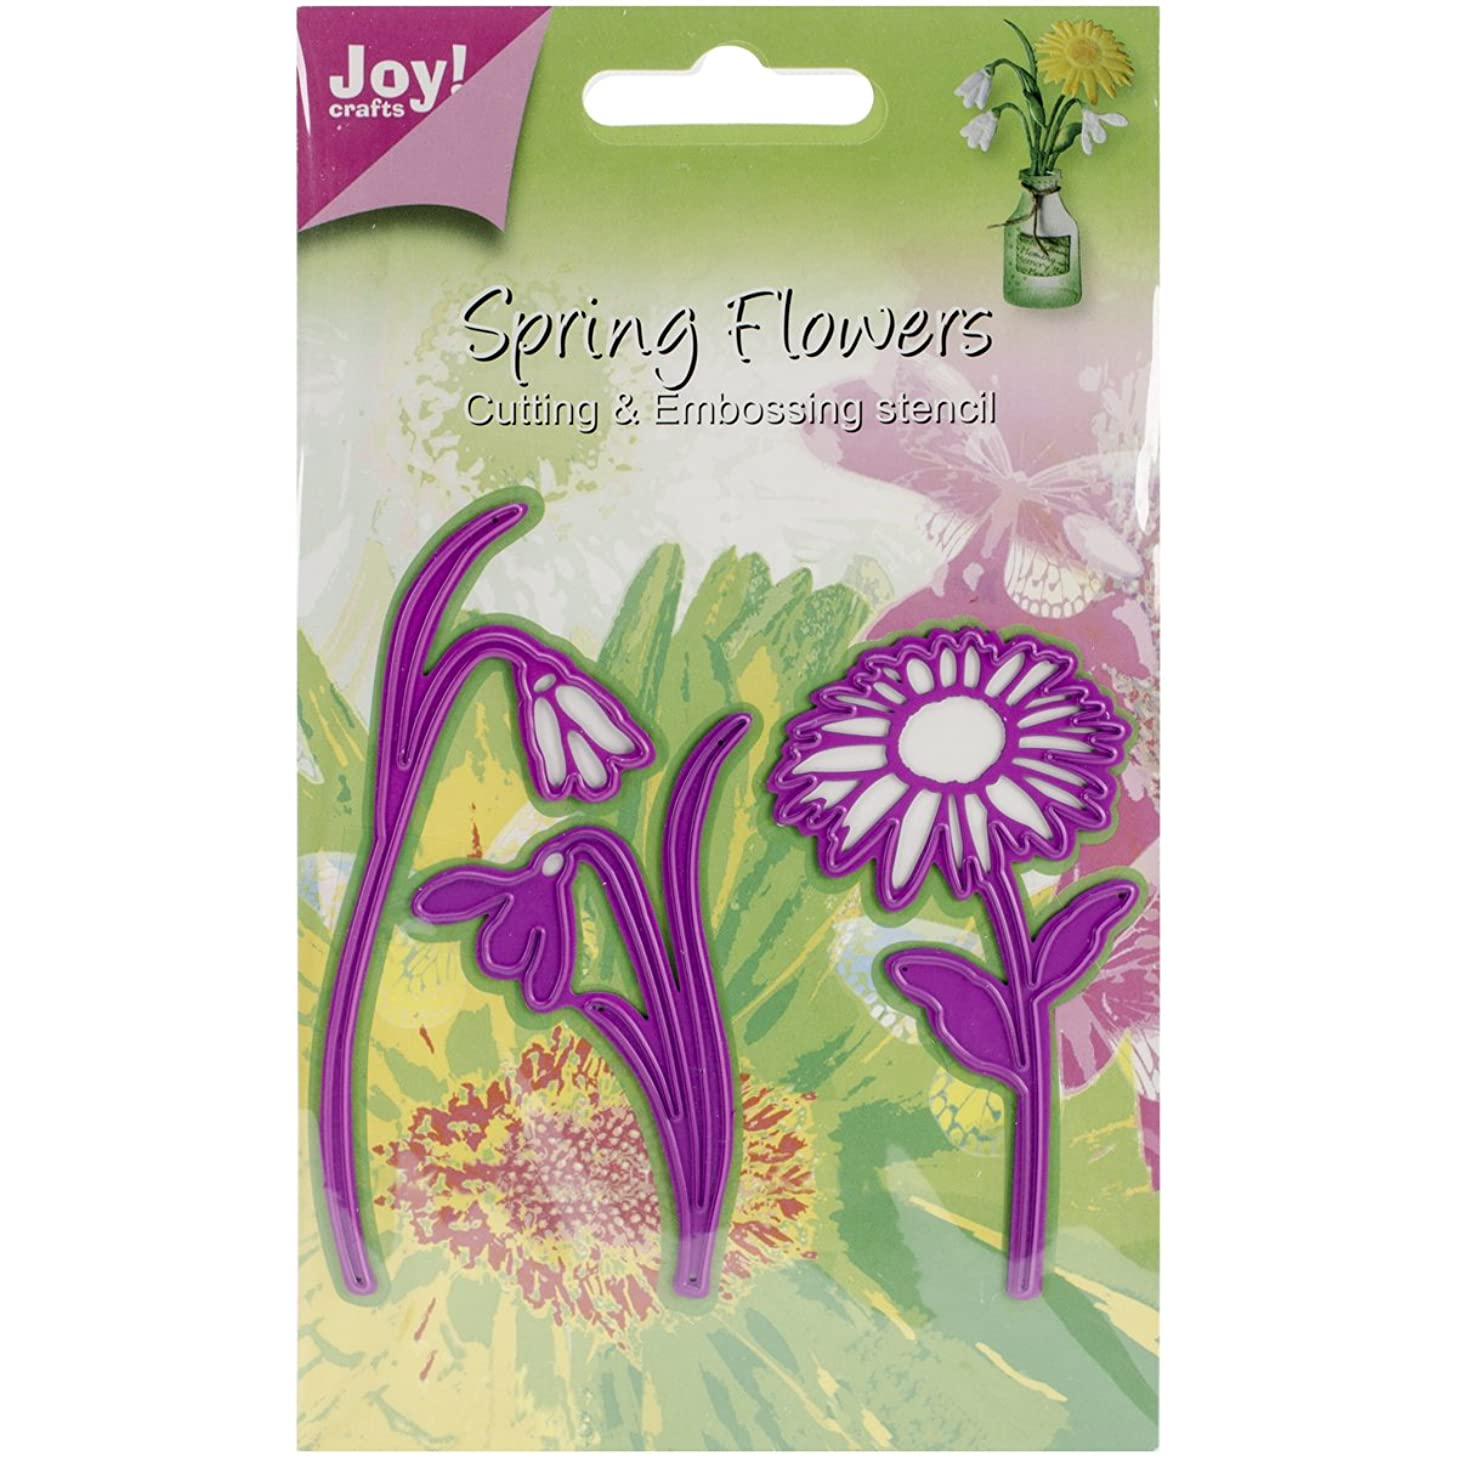 Joy! Crafts Cutting and Embossing Die, 3 Flowers Marguerite/2x Snowdrop